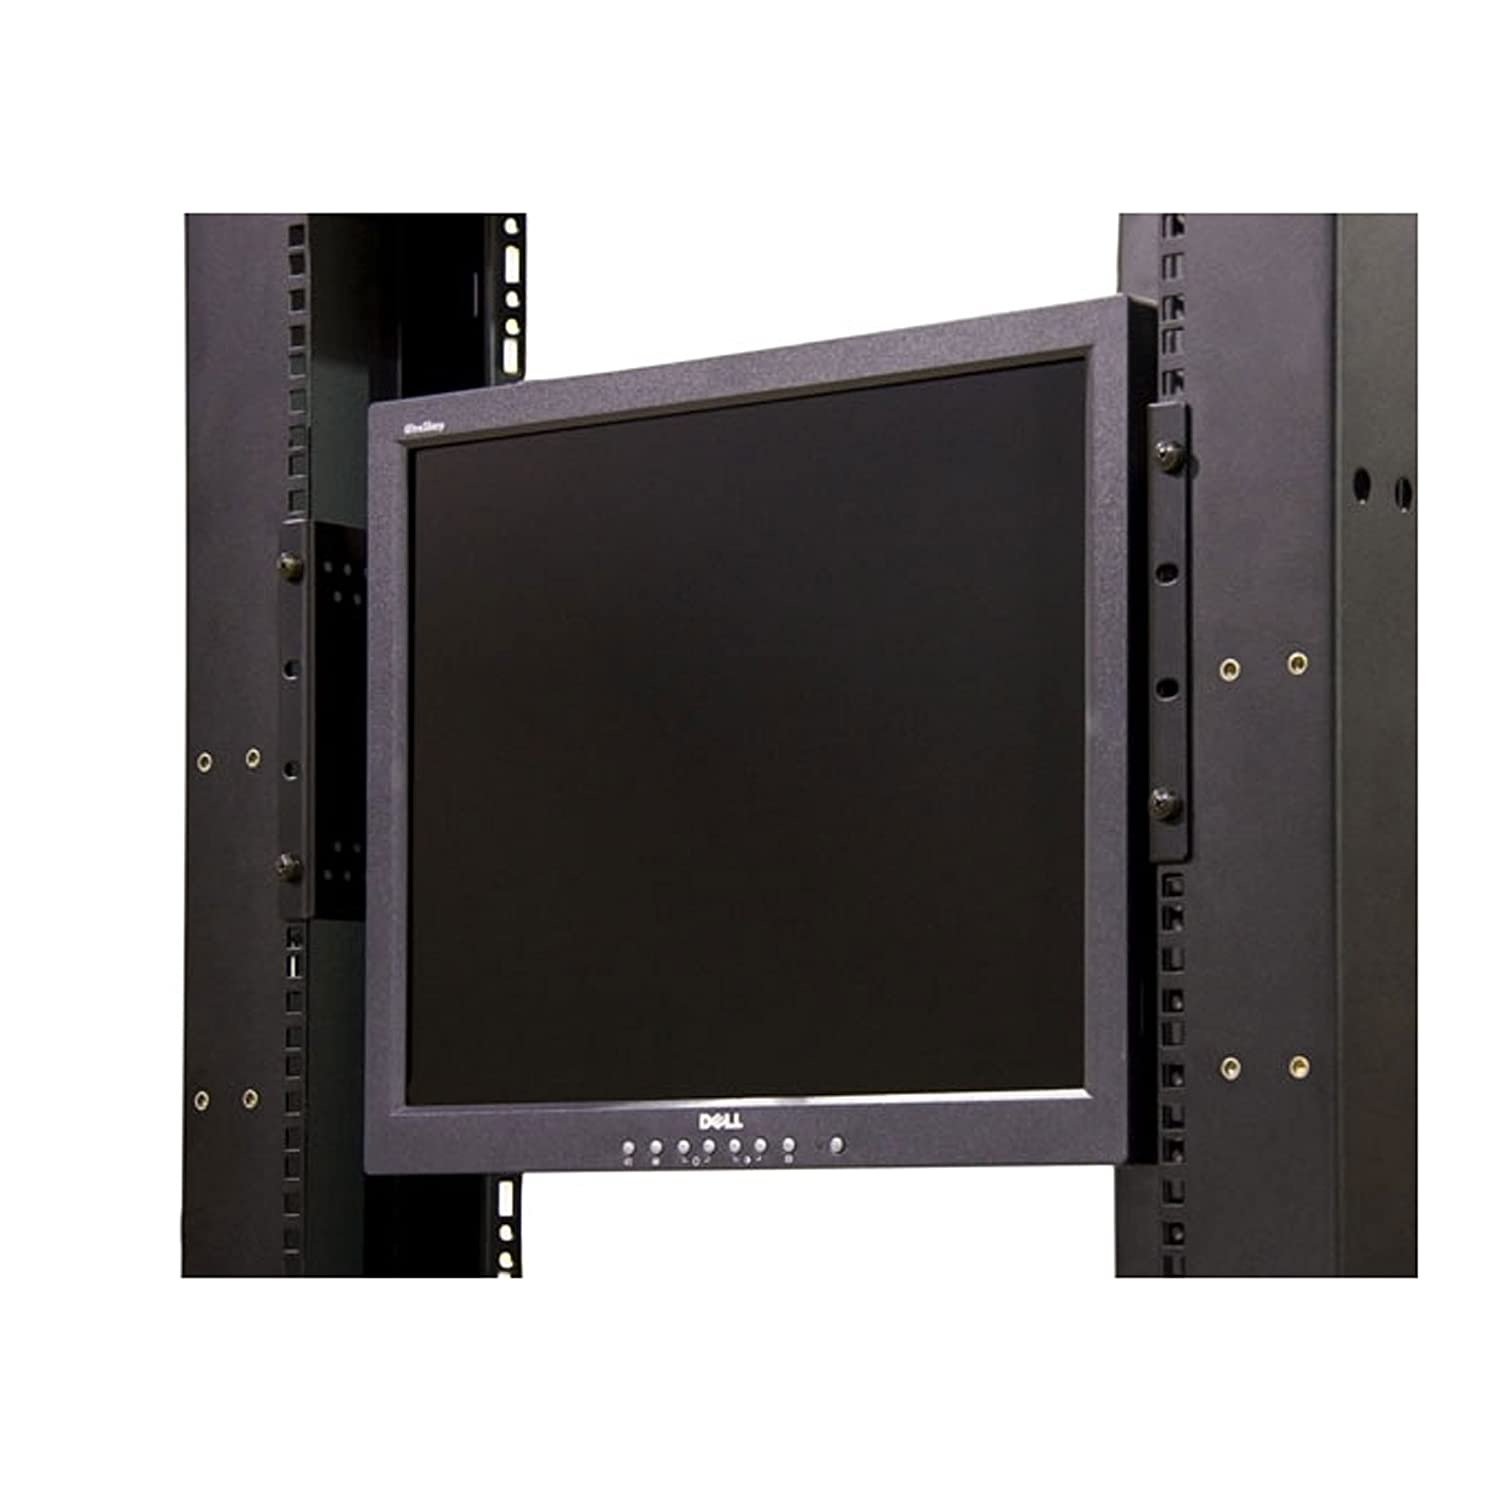 Com Lcd Monitor Mounting 17 19in Bracket For Racks Cabinets Rklcdbk Electronics